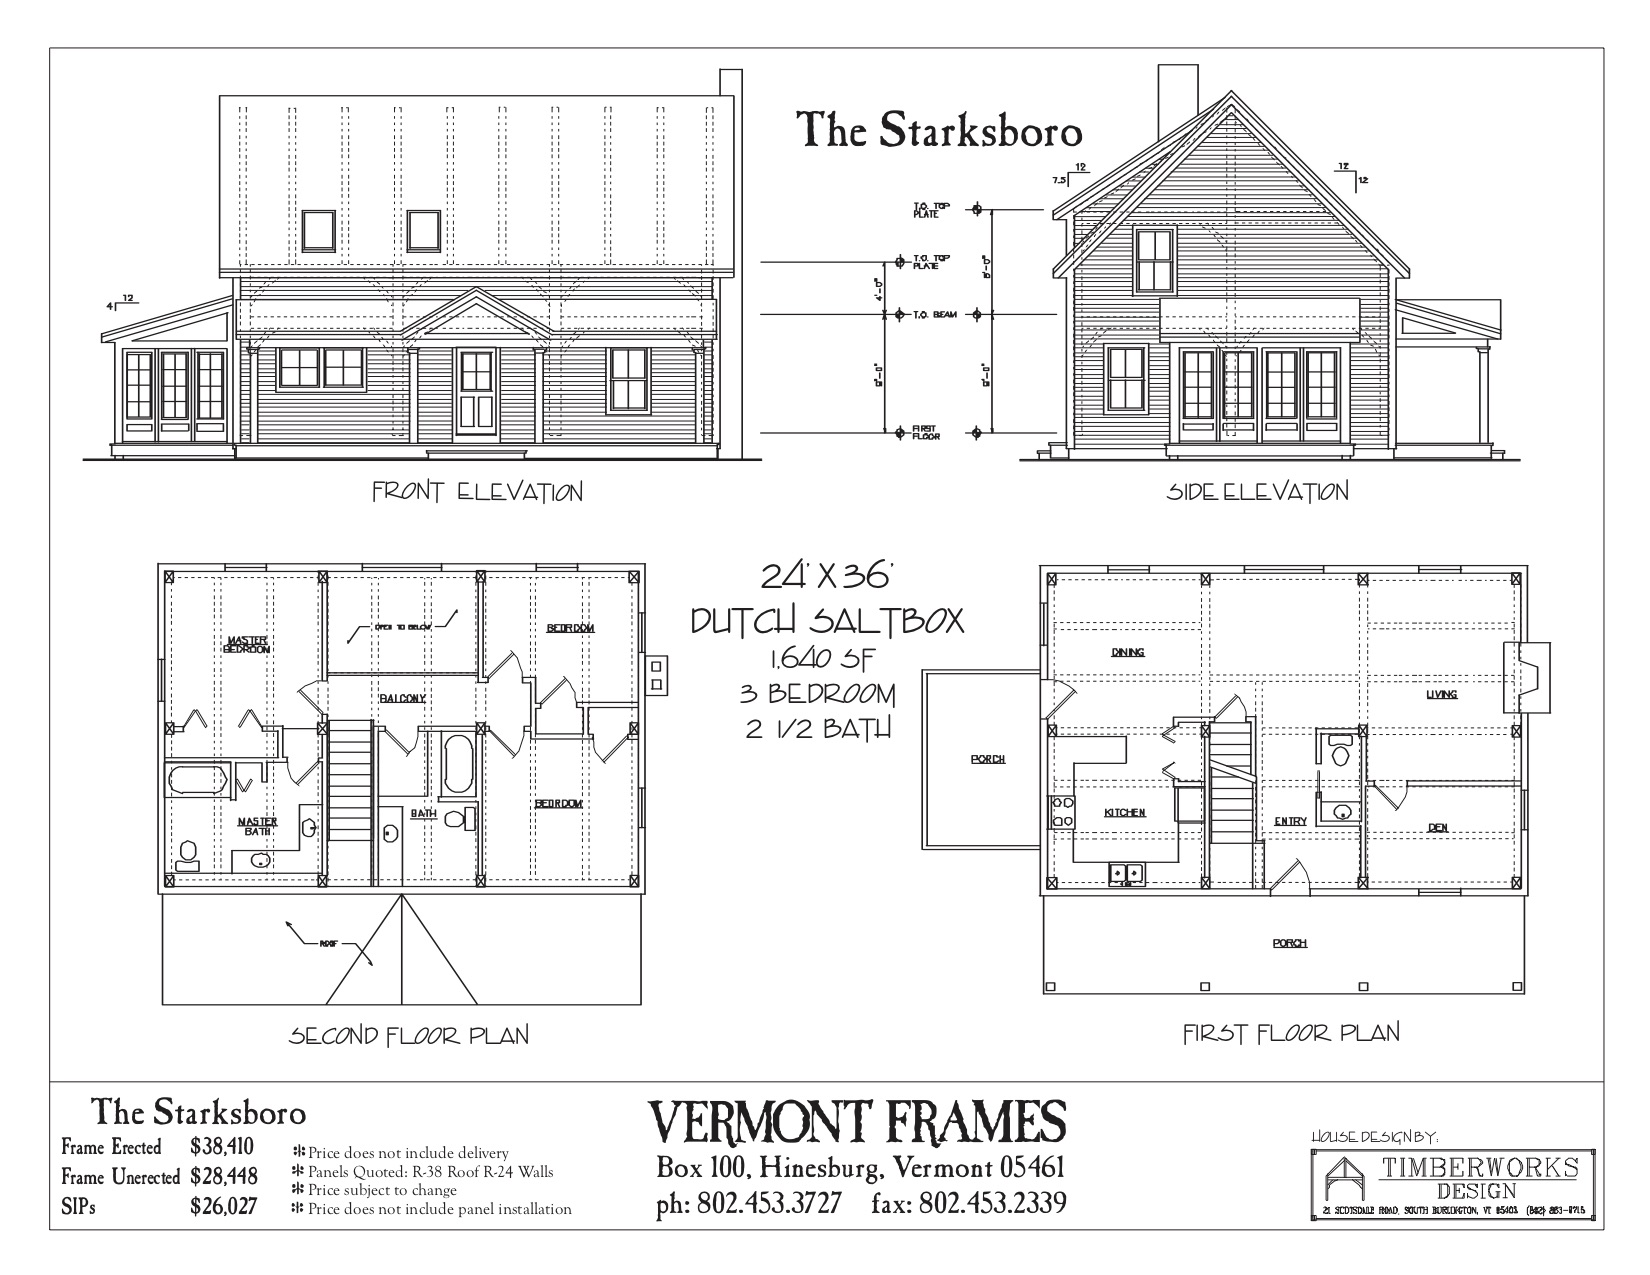 Starksboro Dutch Saltbox/Cape floor plan